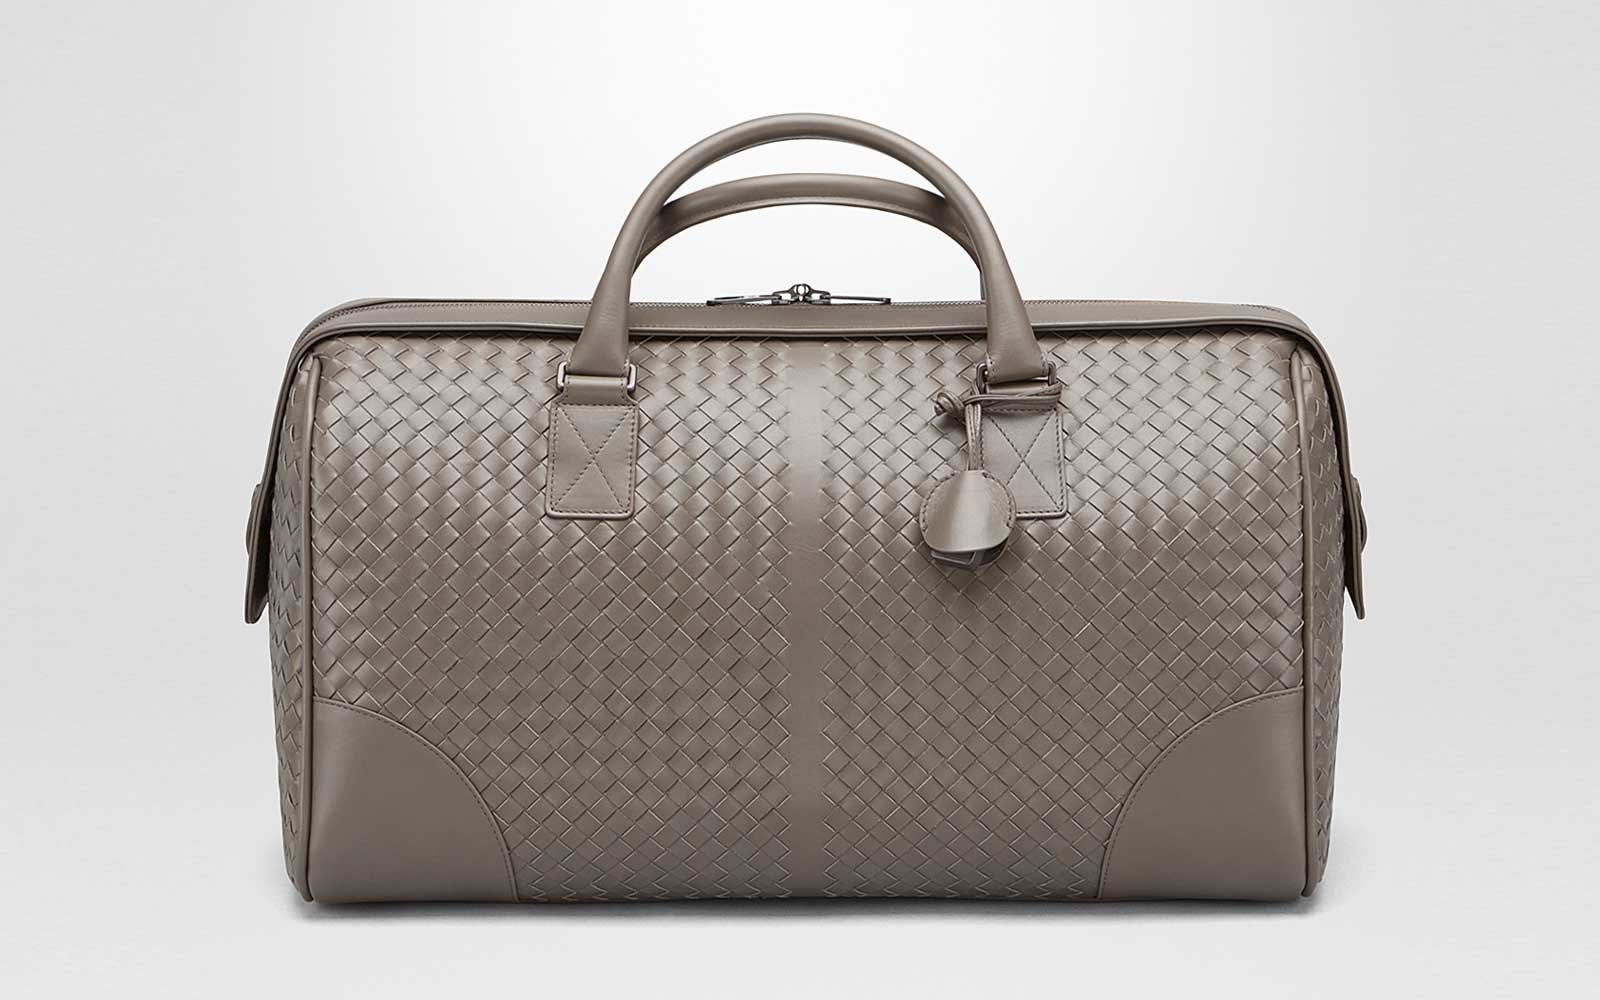 Bottega Veneta duffel bag